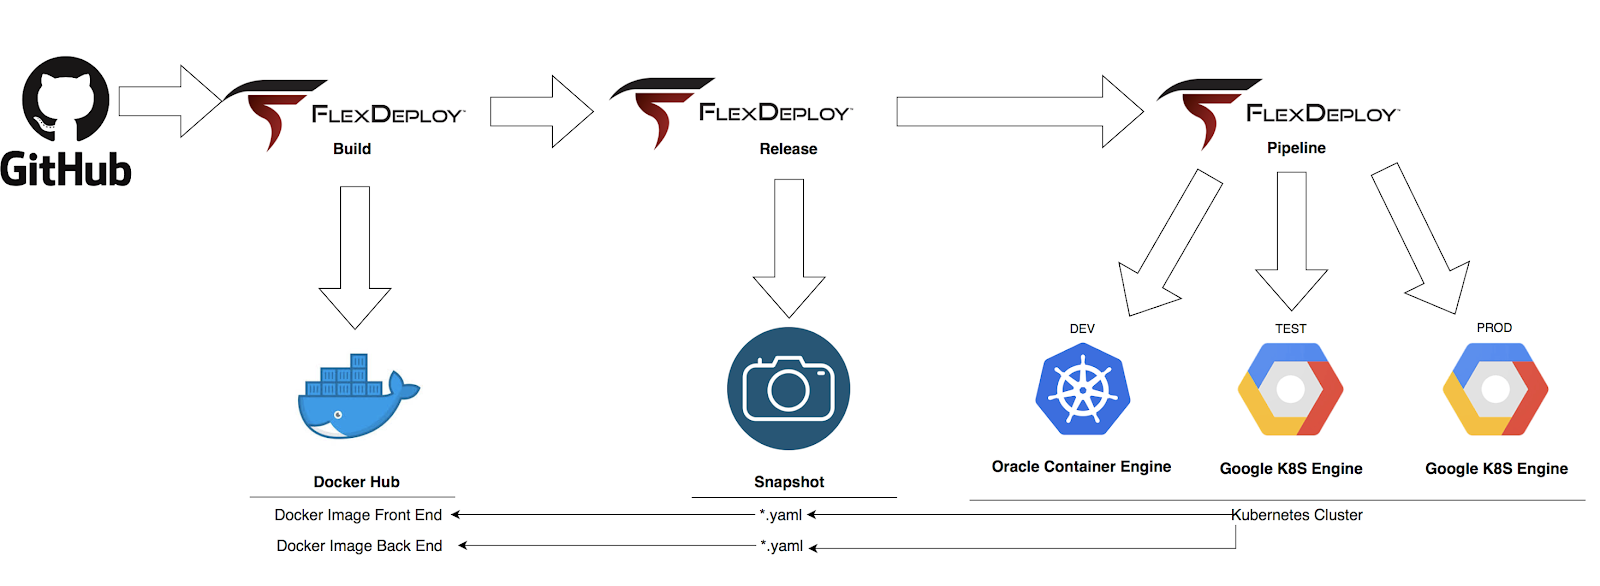 FlexDeploy Loves Containers: Build and Deploy Microservices to